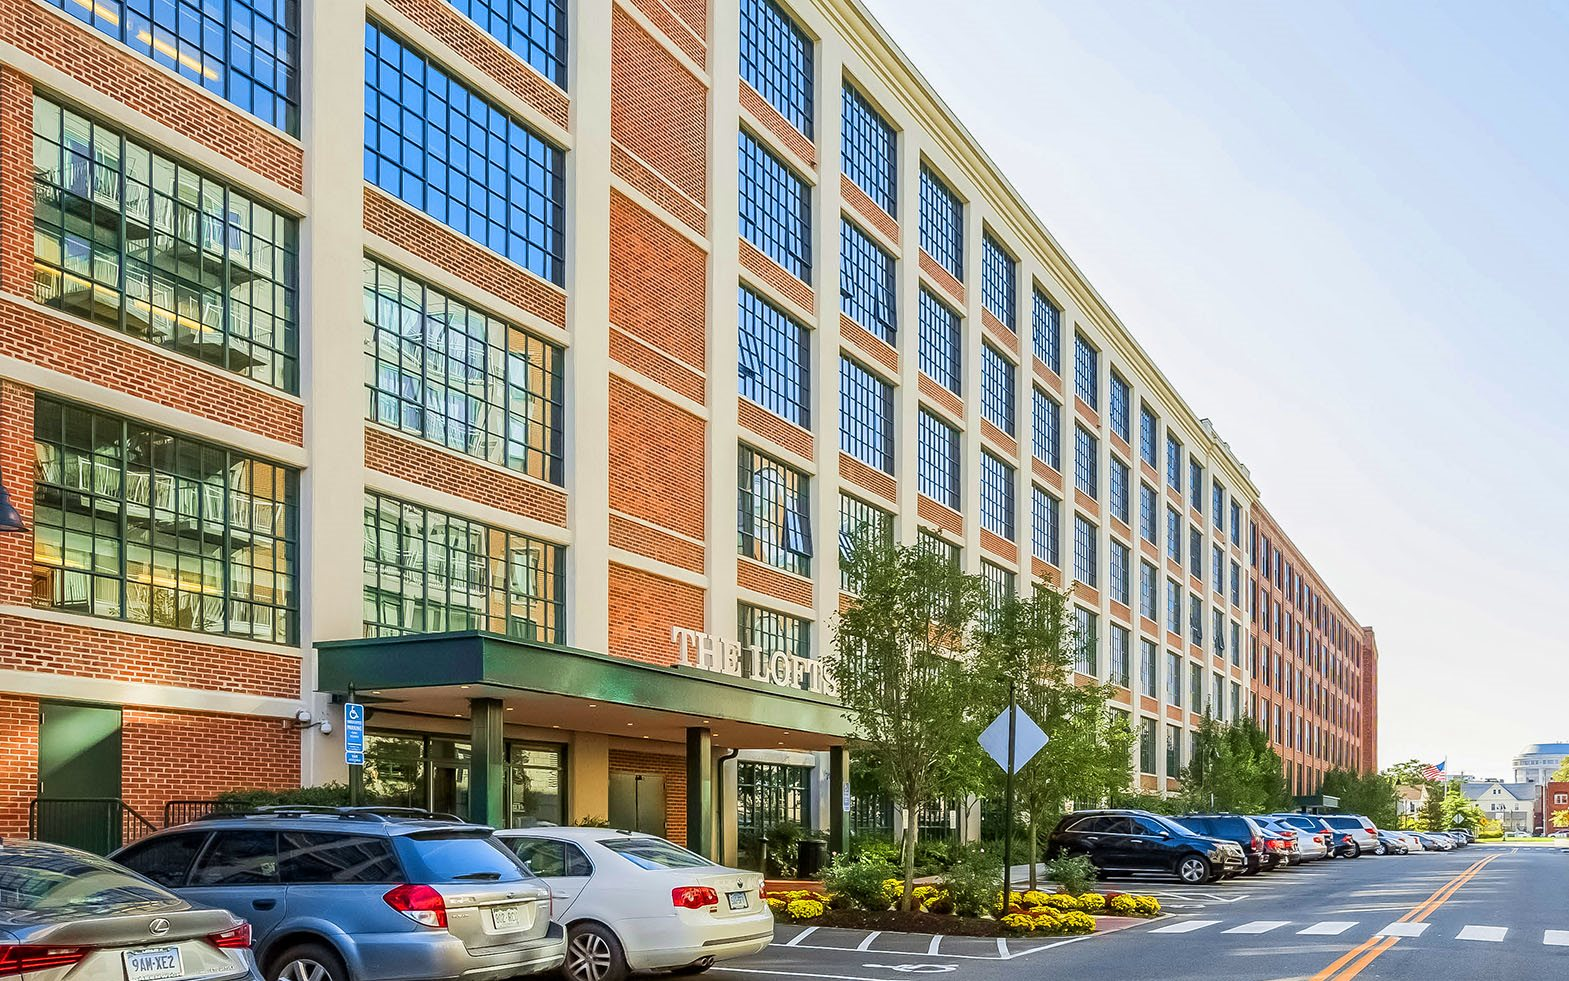 The Lofts At Yale Amp Towne Apartments In Stamford Ct